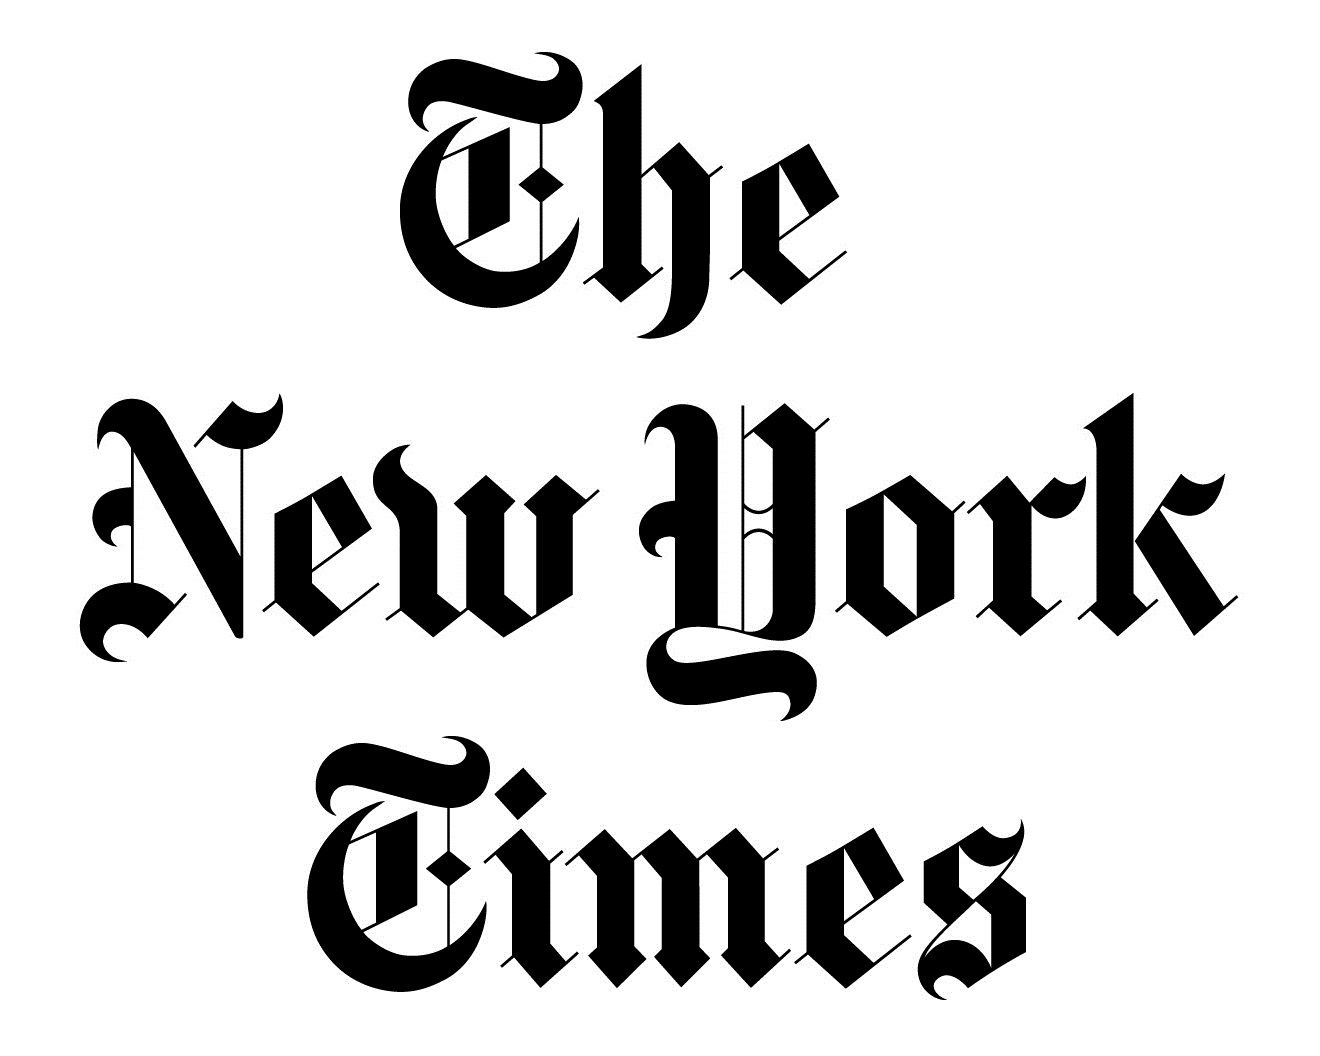 Visit the New York Times access guide